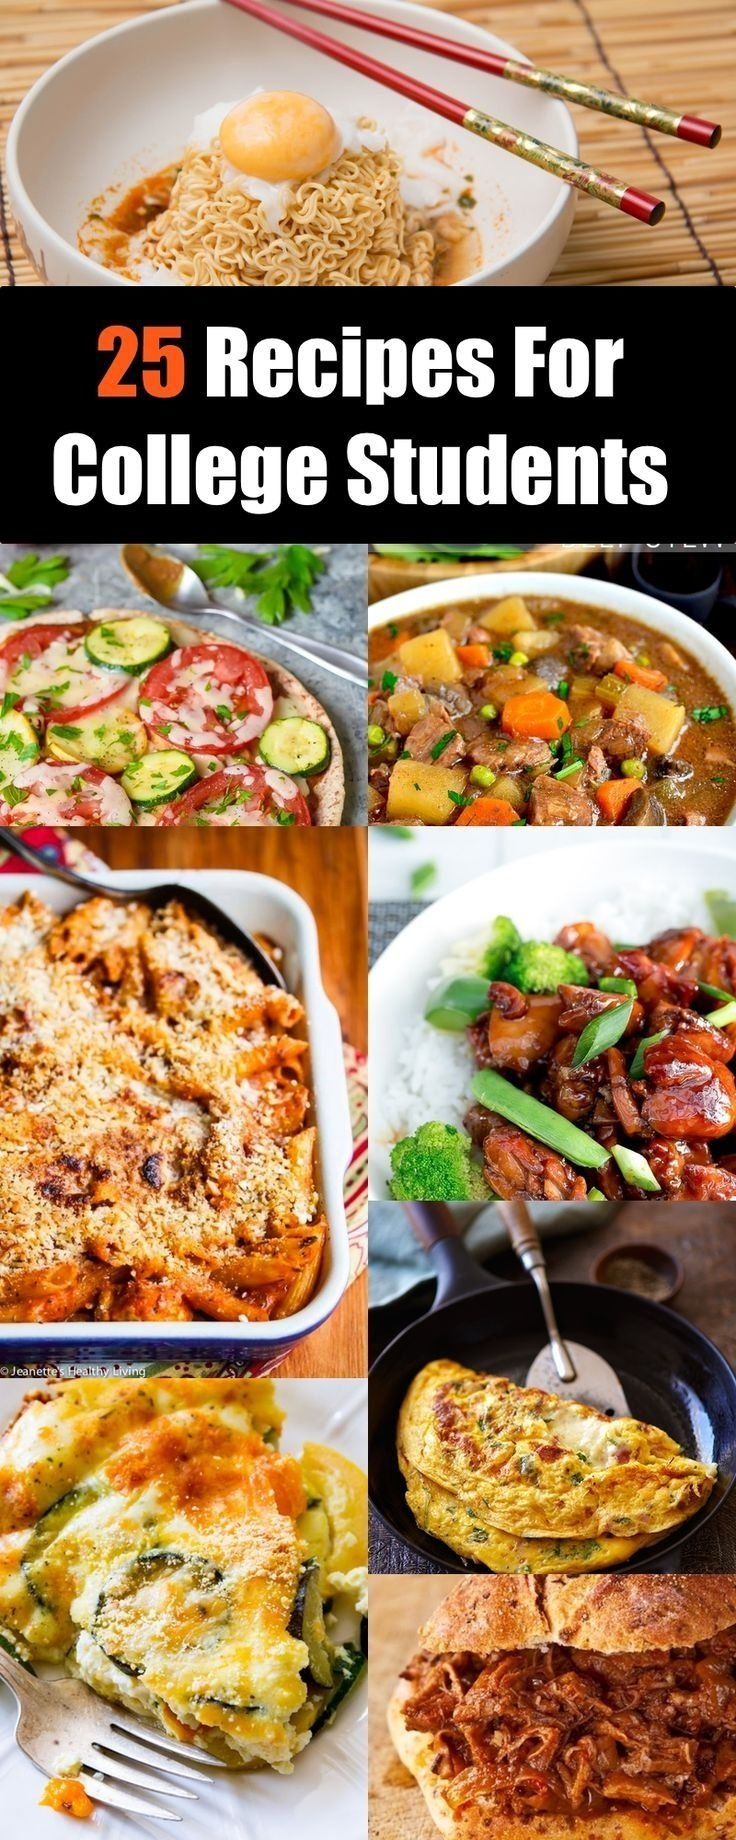 10 Lovely Inexpensive Dinner Ideas For Two 25 recipes for college students that wont break your budget 2 2020